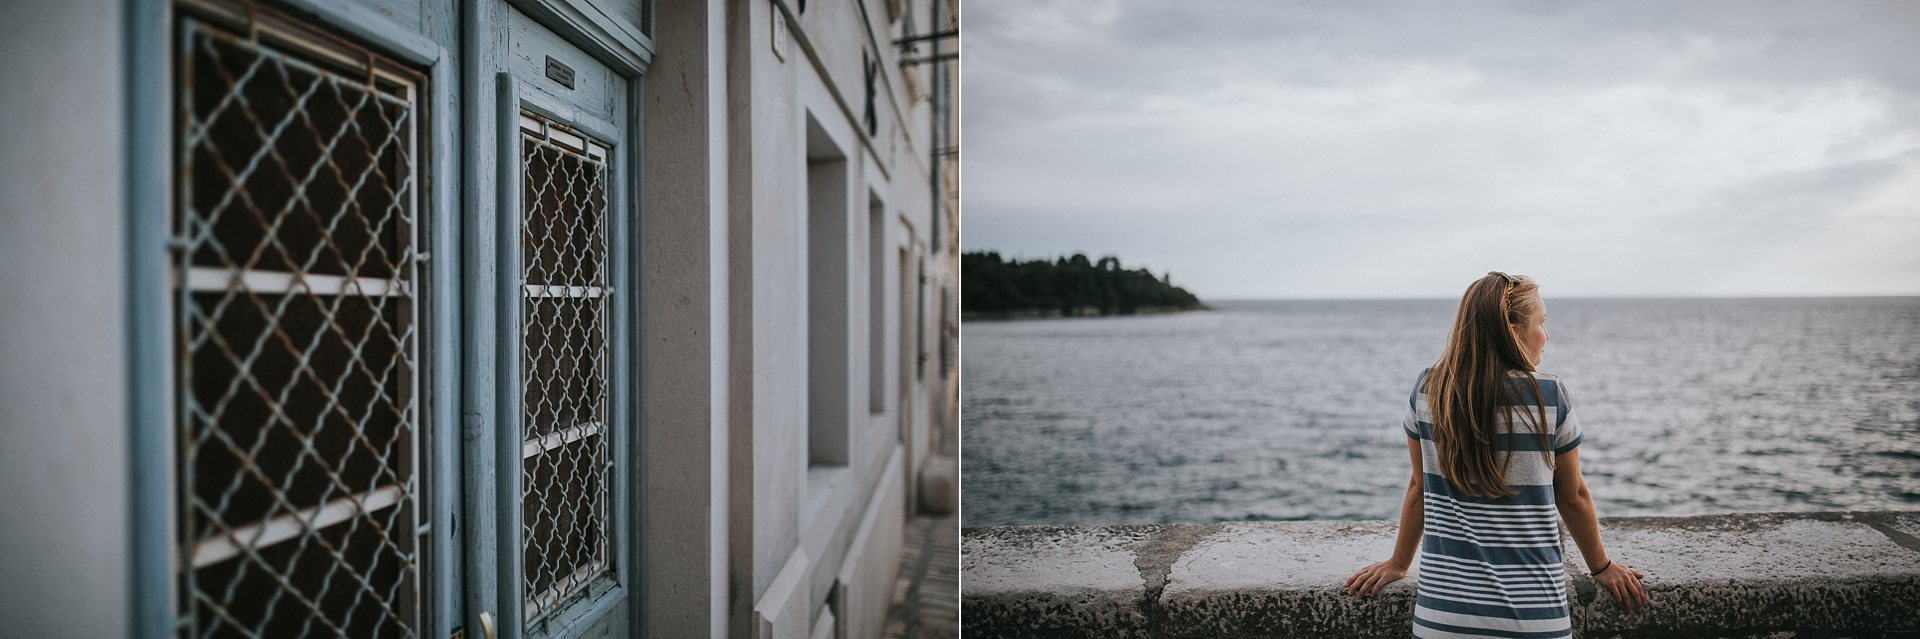 Dalibora_Bijelic_Croatia_Istria_family_vacation_photographer_0021.jpg